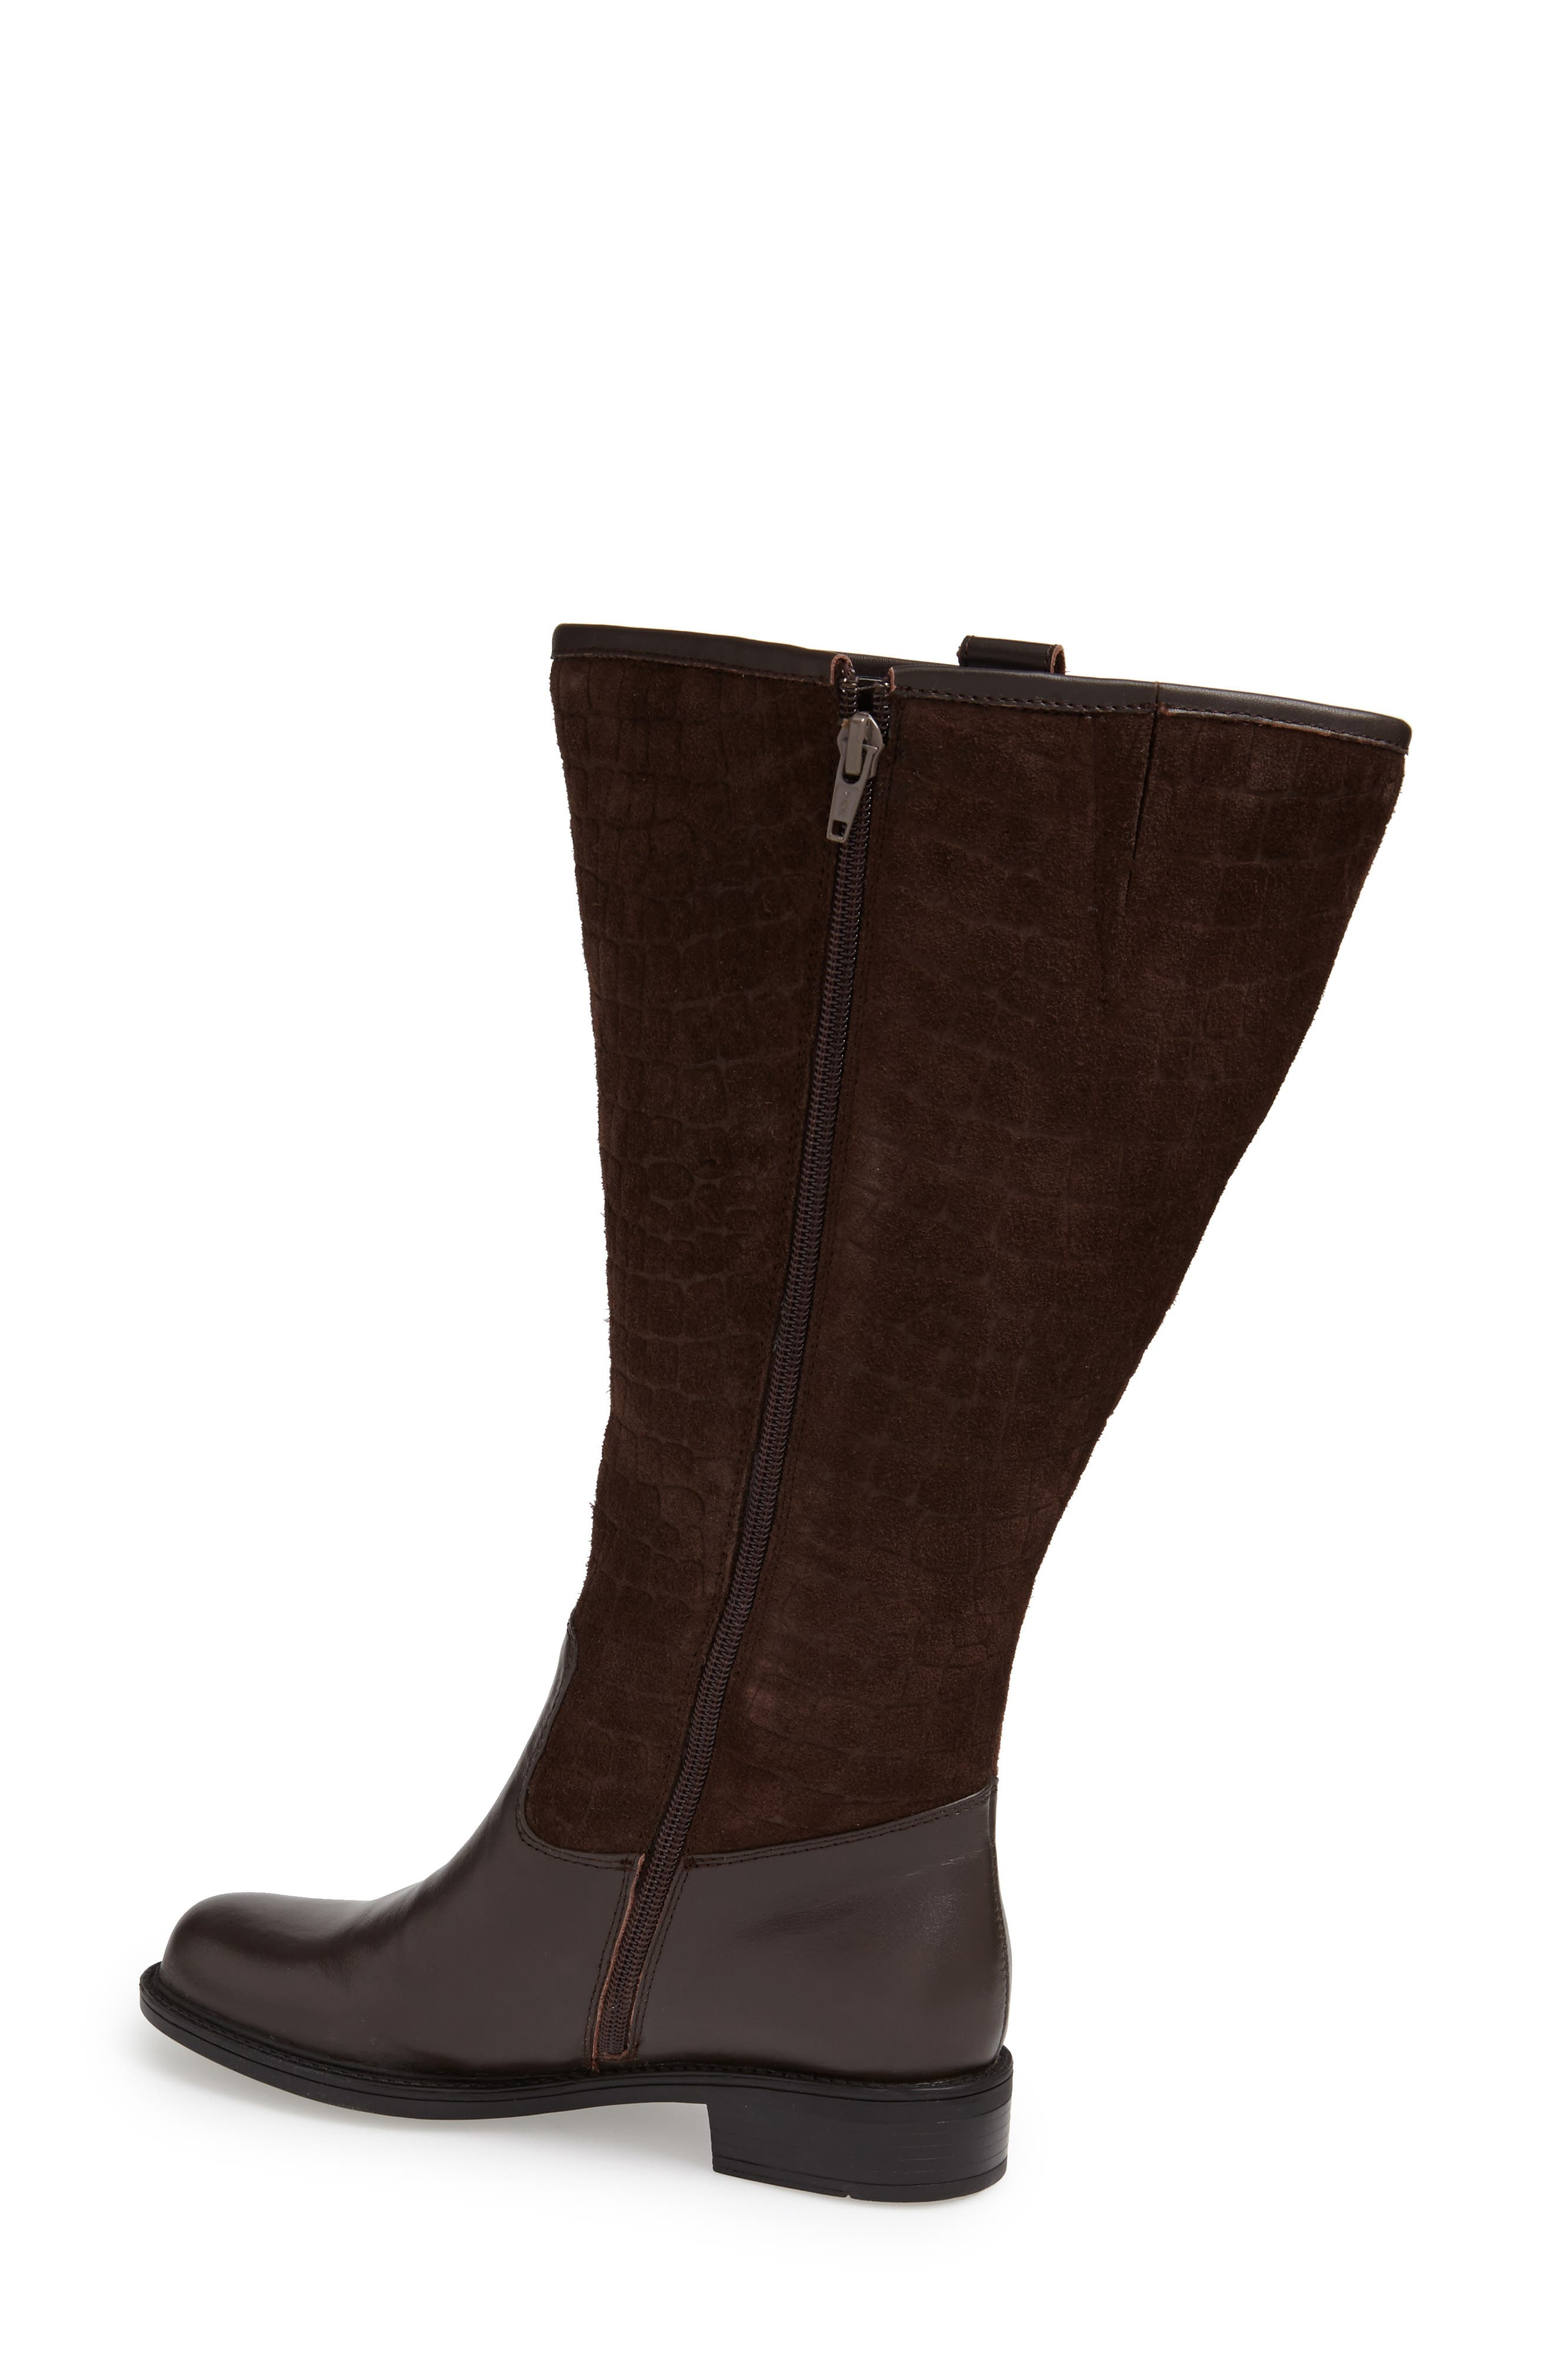 'Best' Calfskin Leather & Suede Boot,                             Alternate thumbnail 16, color,